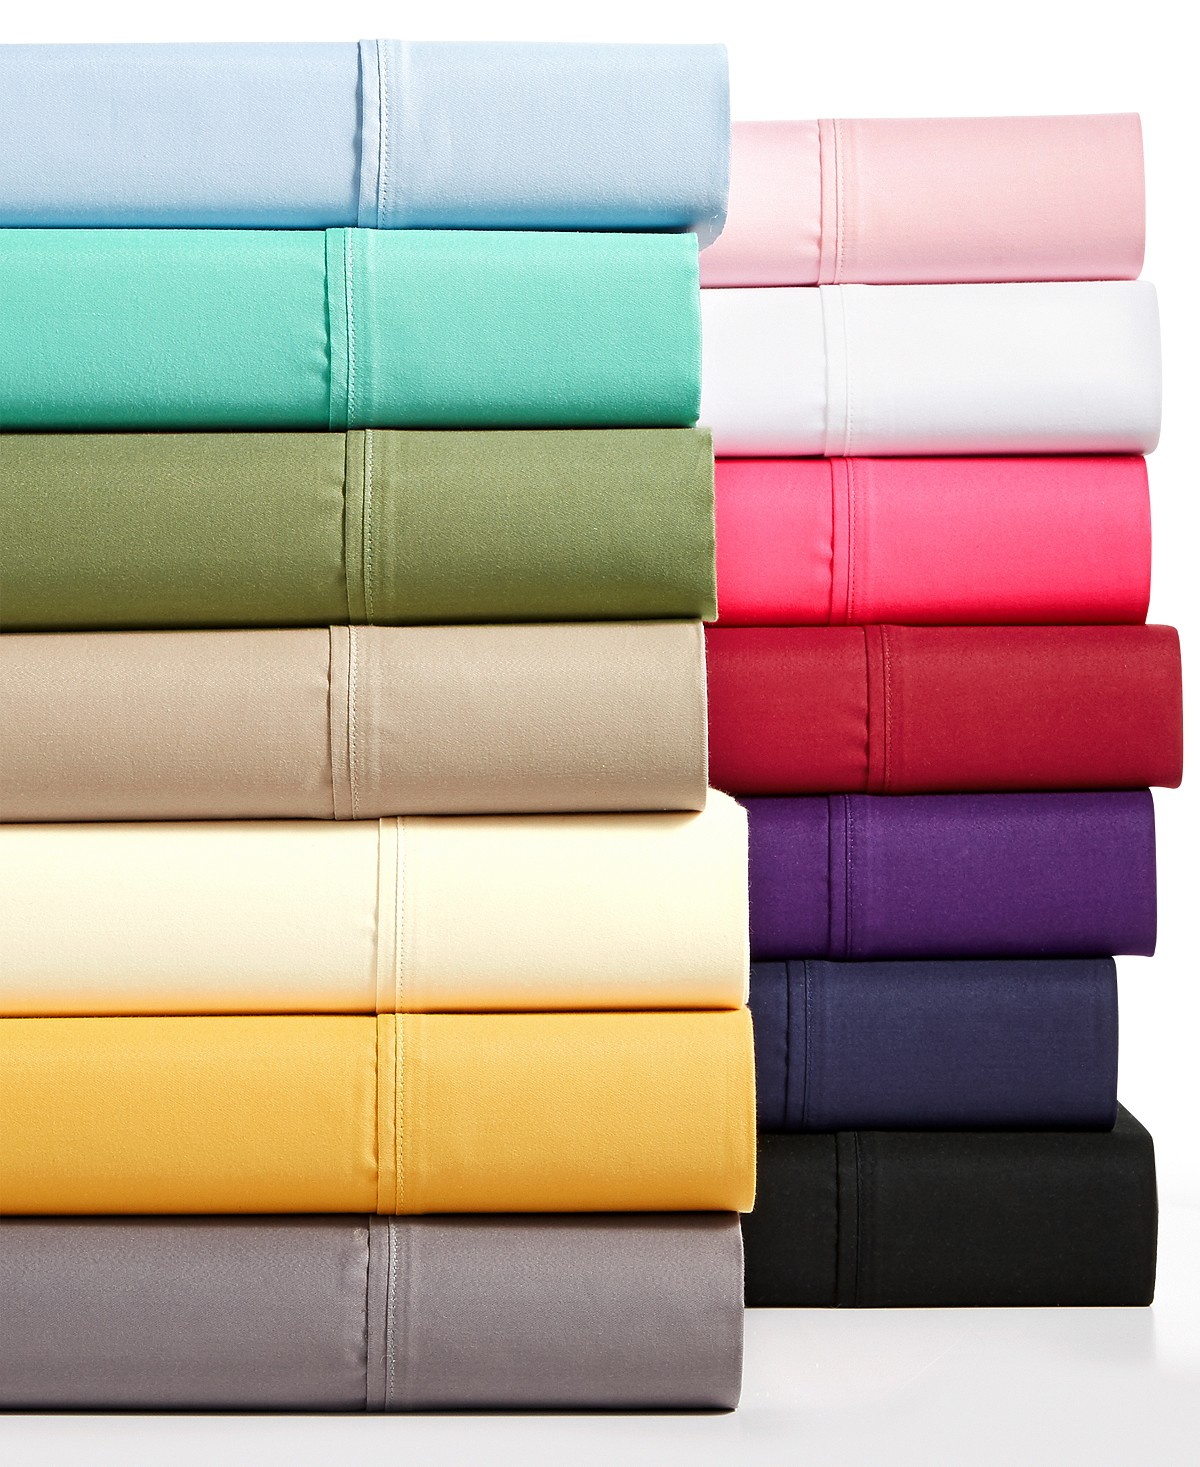 MACYS TODAY SPECIAL! 900 THREAD COUNT 4 PIECE QUEEN SIZE SHEETS FOR ONLY $39.99!